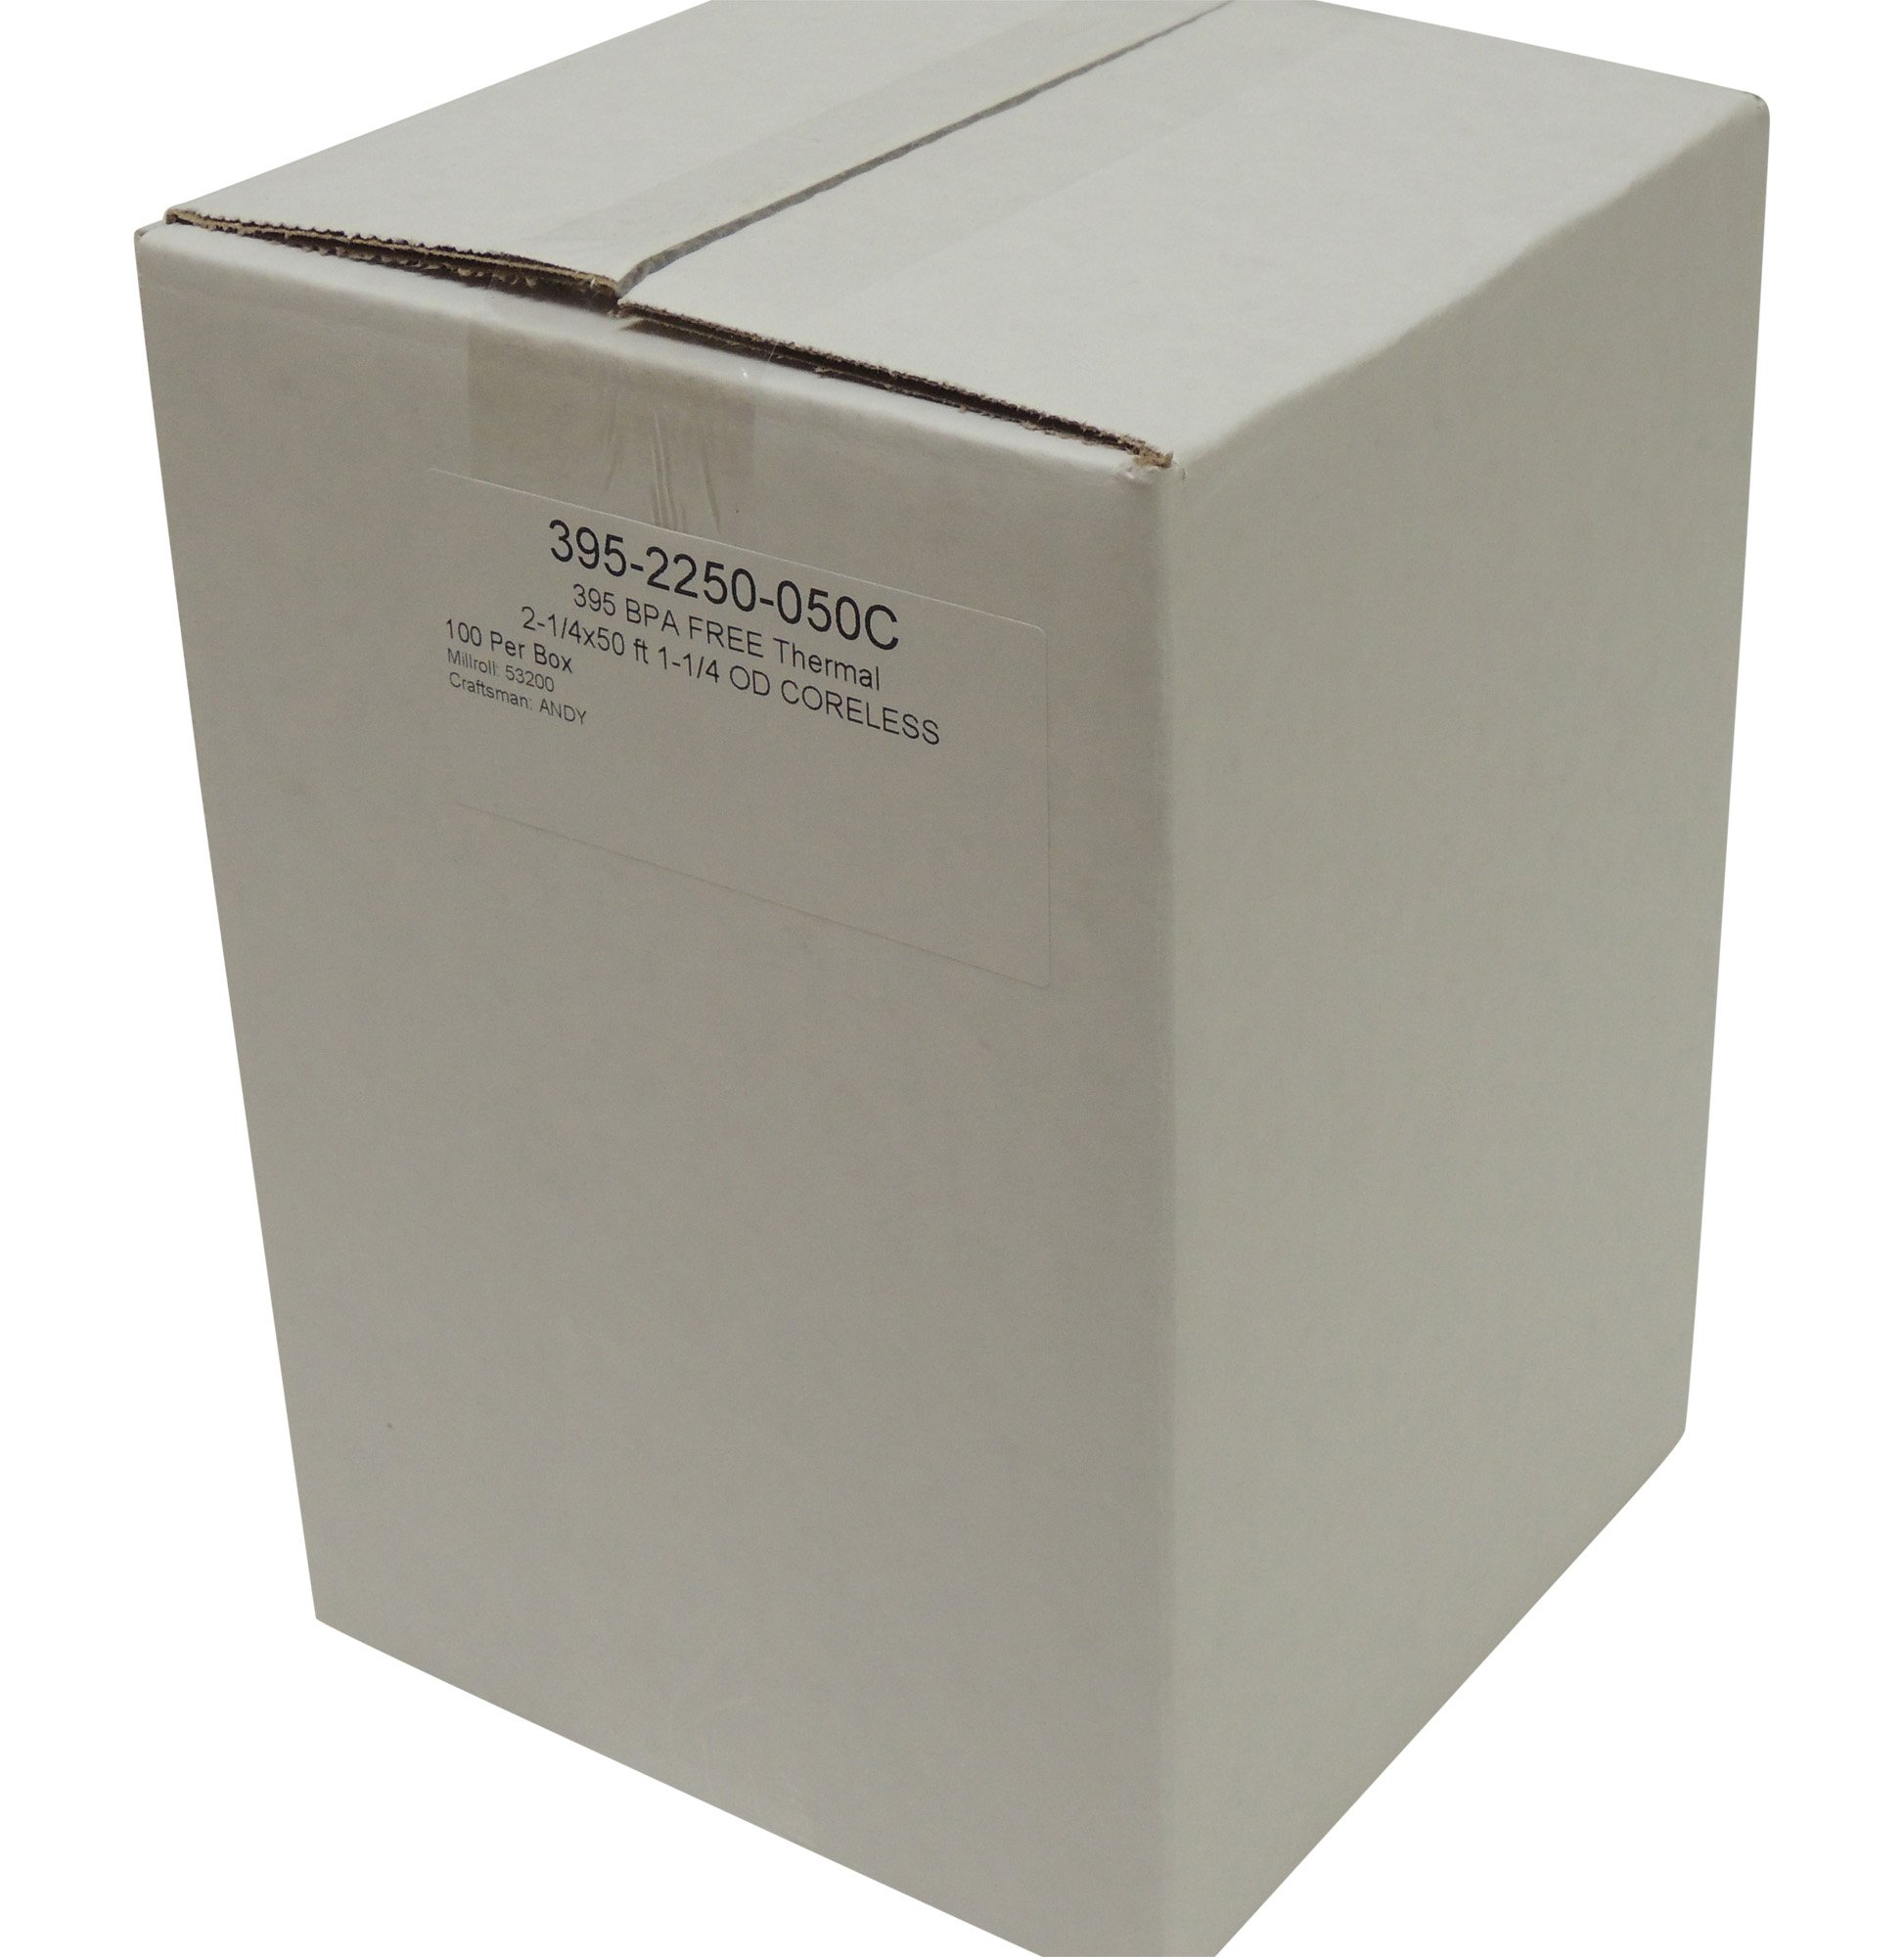 Thermal Paper 2-1/4'' x 50 ft, 1.25'' / 30mm Diameter, CORELESS, BPA Free, 100 Rolls by POS1 (Image #3)